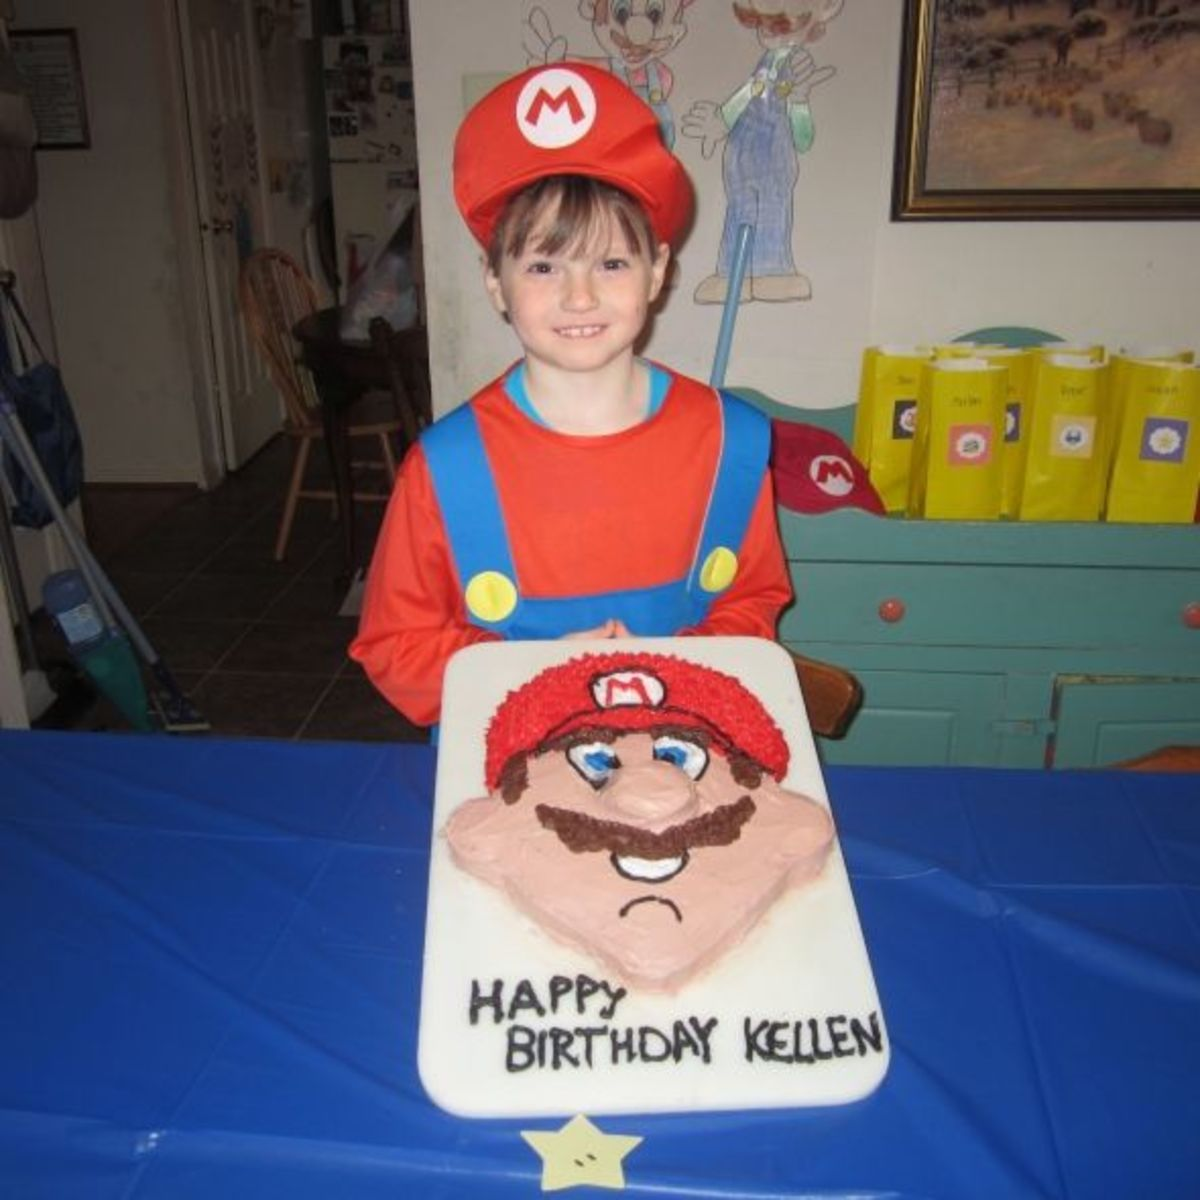 My son, Kellen, was thrilled with his Mario cake!